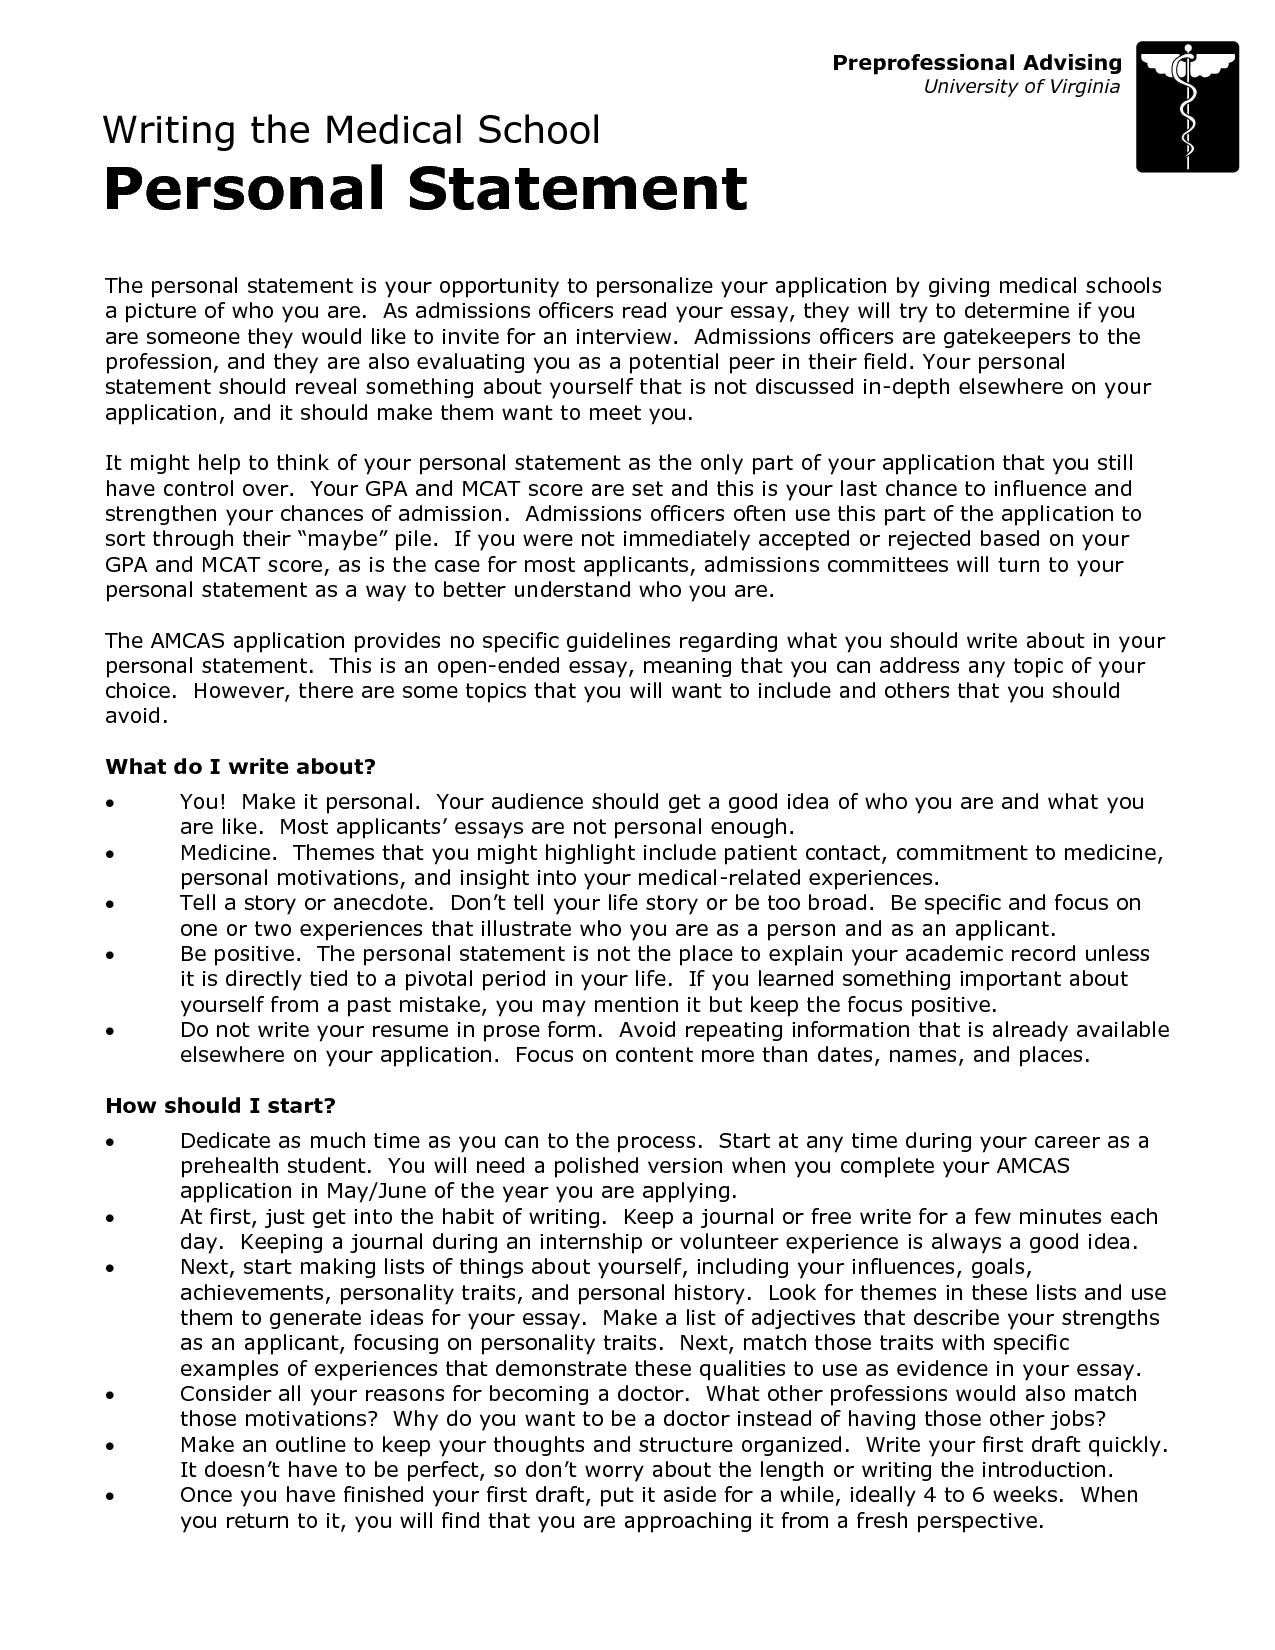 Personal statement essay